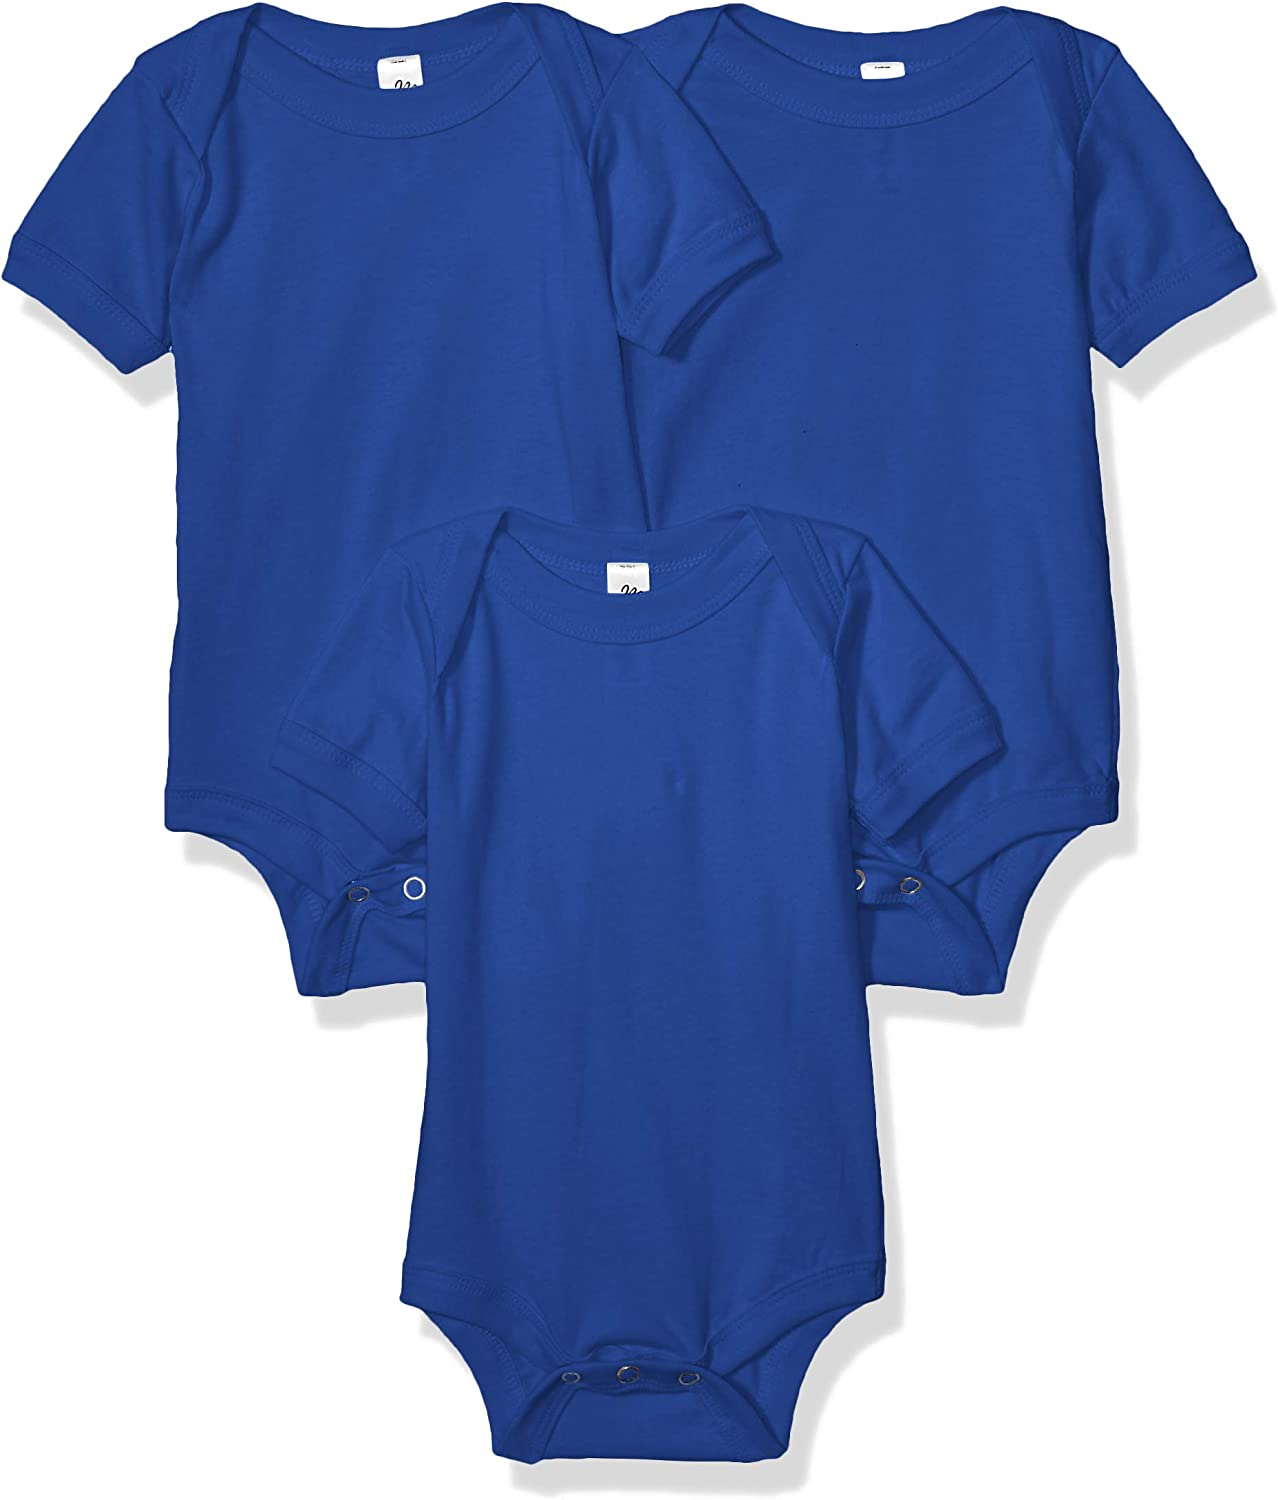 Marky G Apparel Baby Jersey Short-Sleeve One-Piece-3 Pack